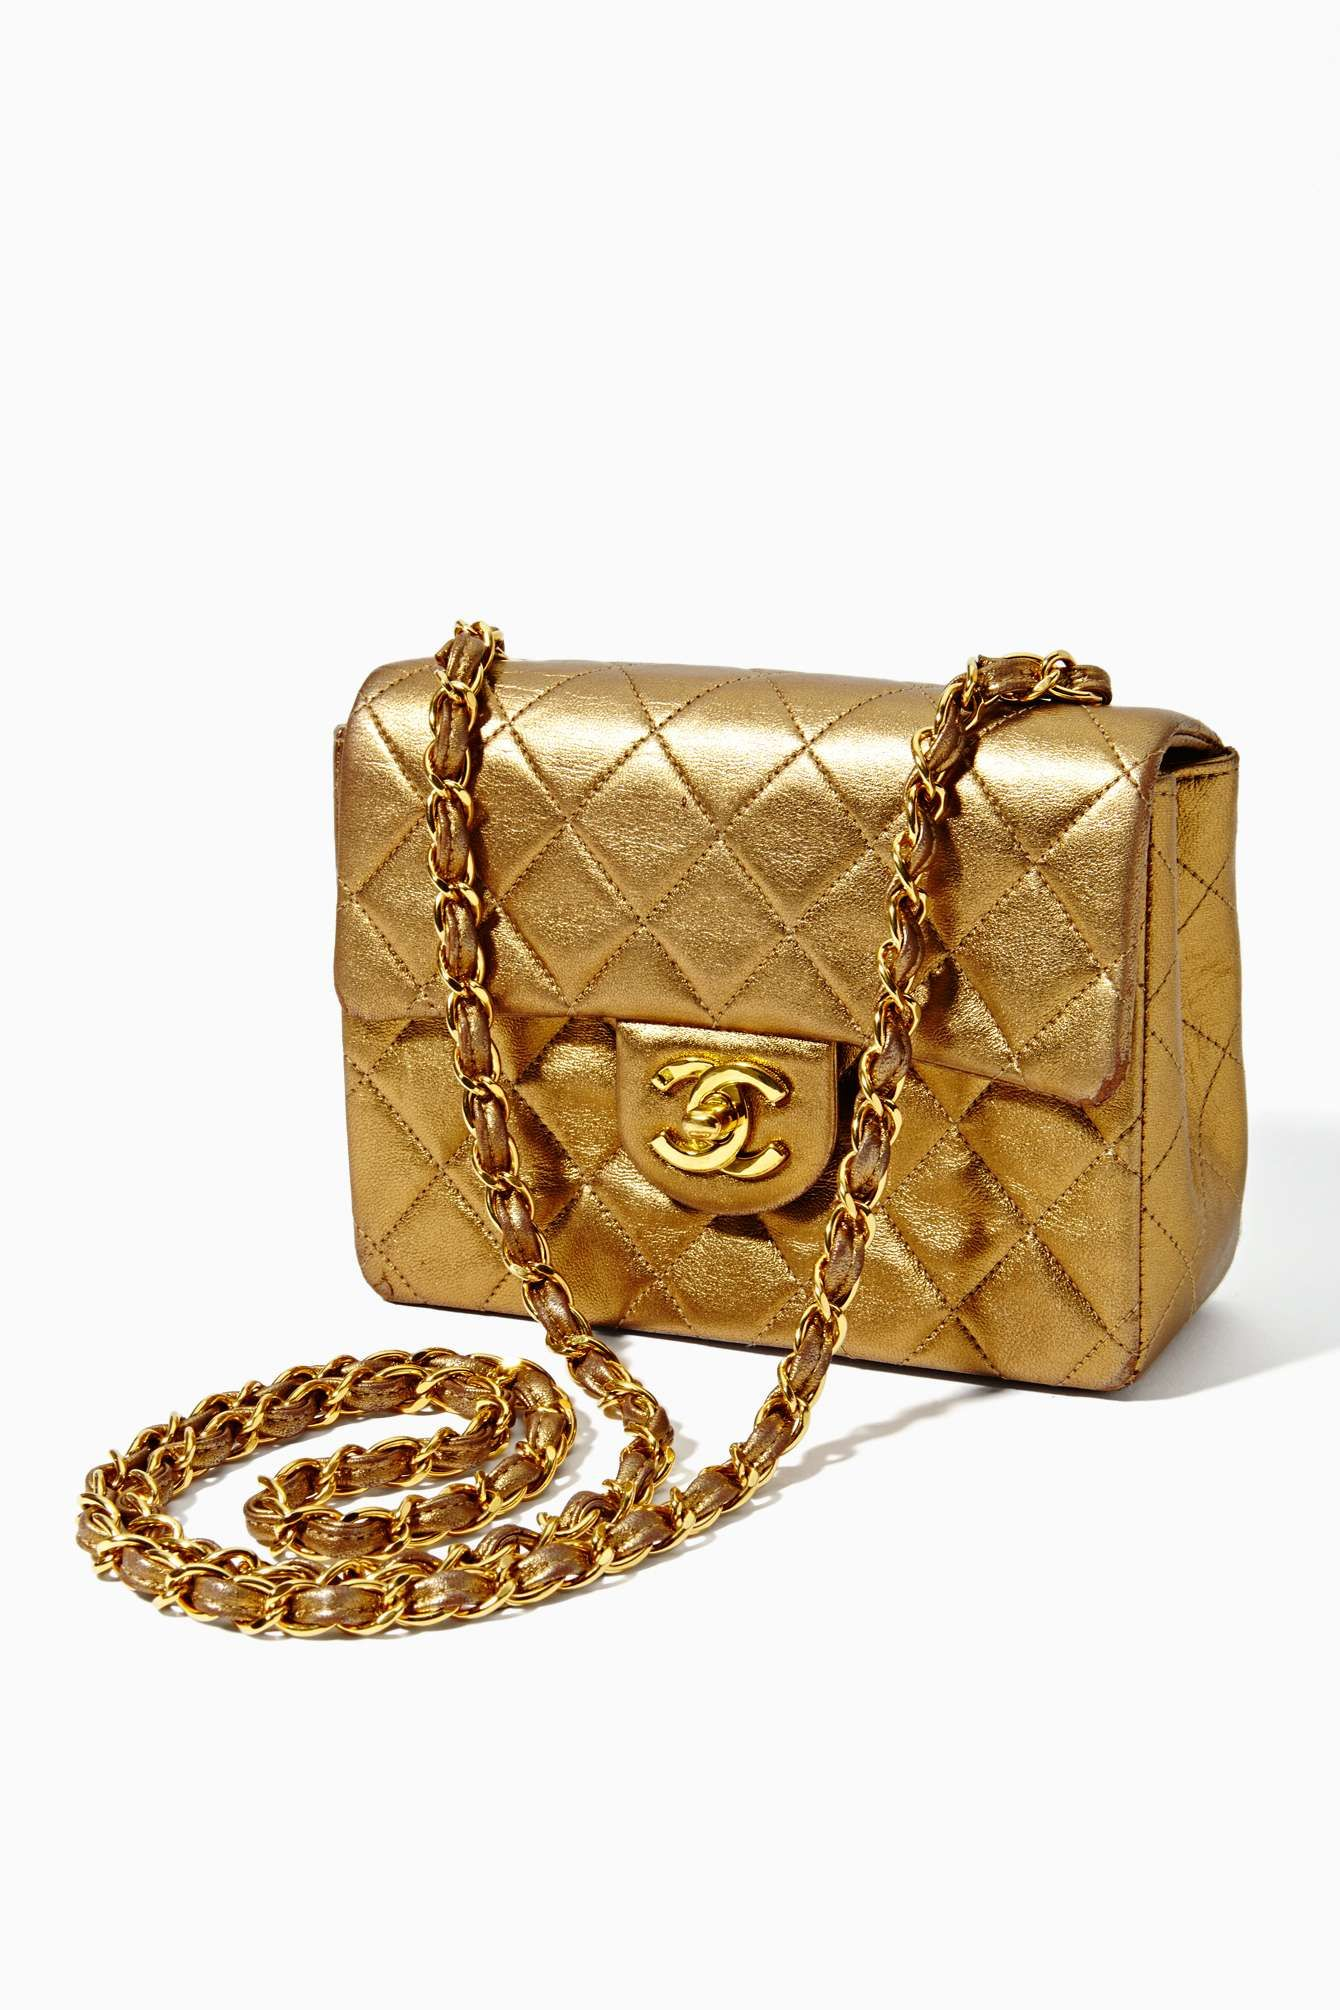 Vintage Chanel Quilted Gold Leather Handbag In Lookbooks